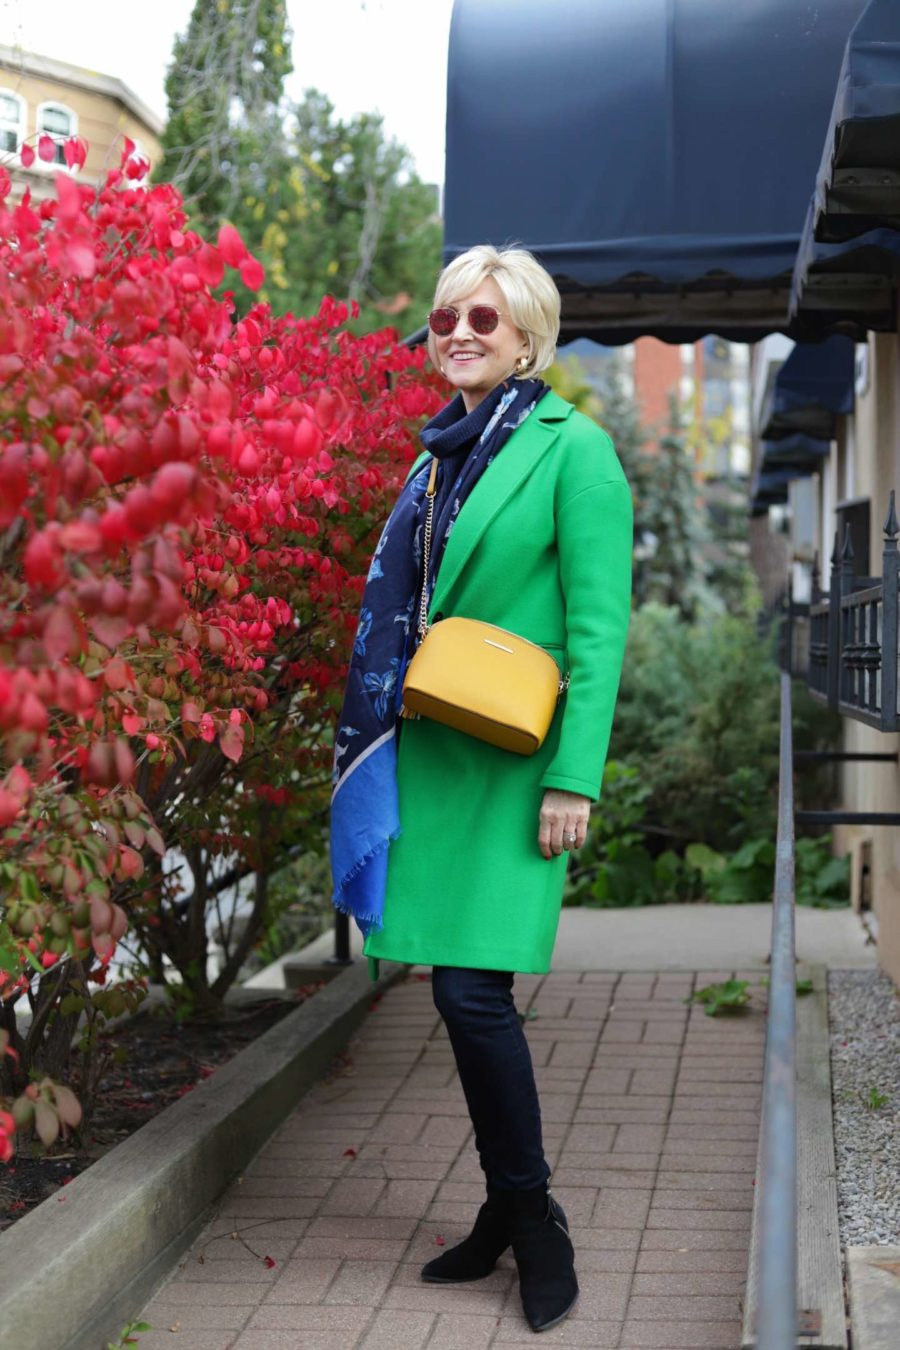 Topshop apple green midi coat worn by Deborah Boland | Fabulous After 40